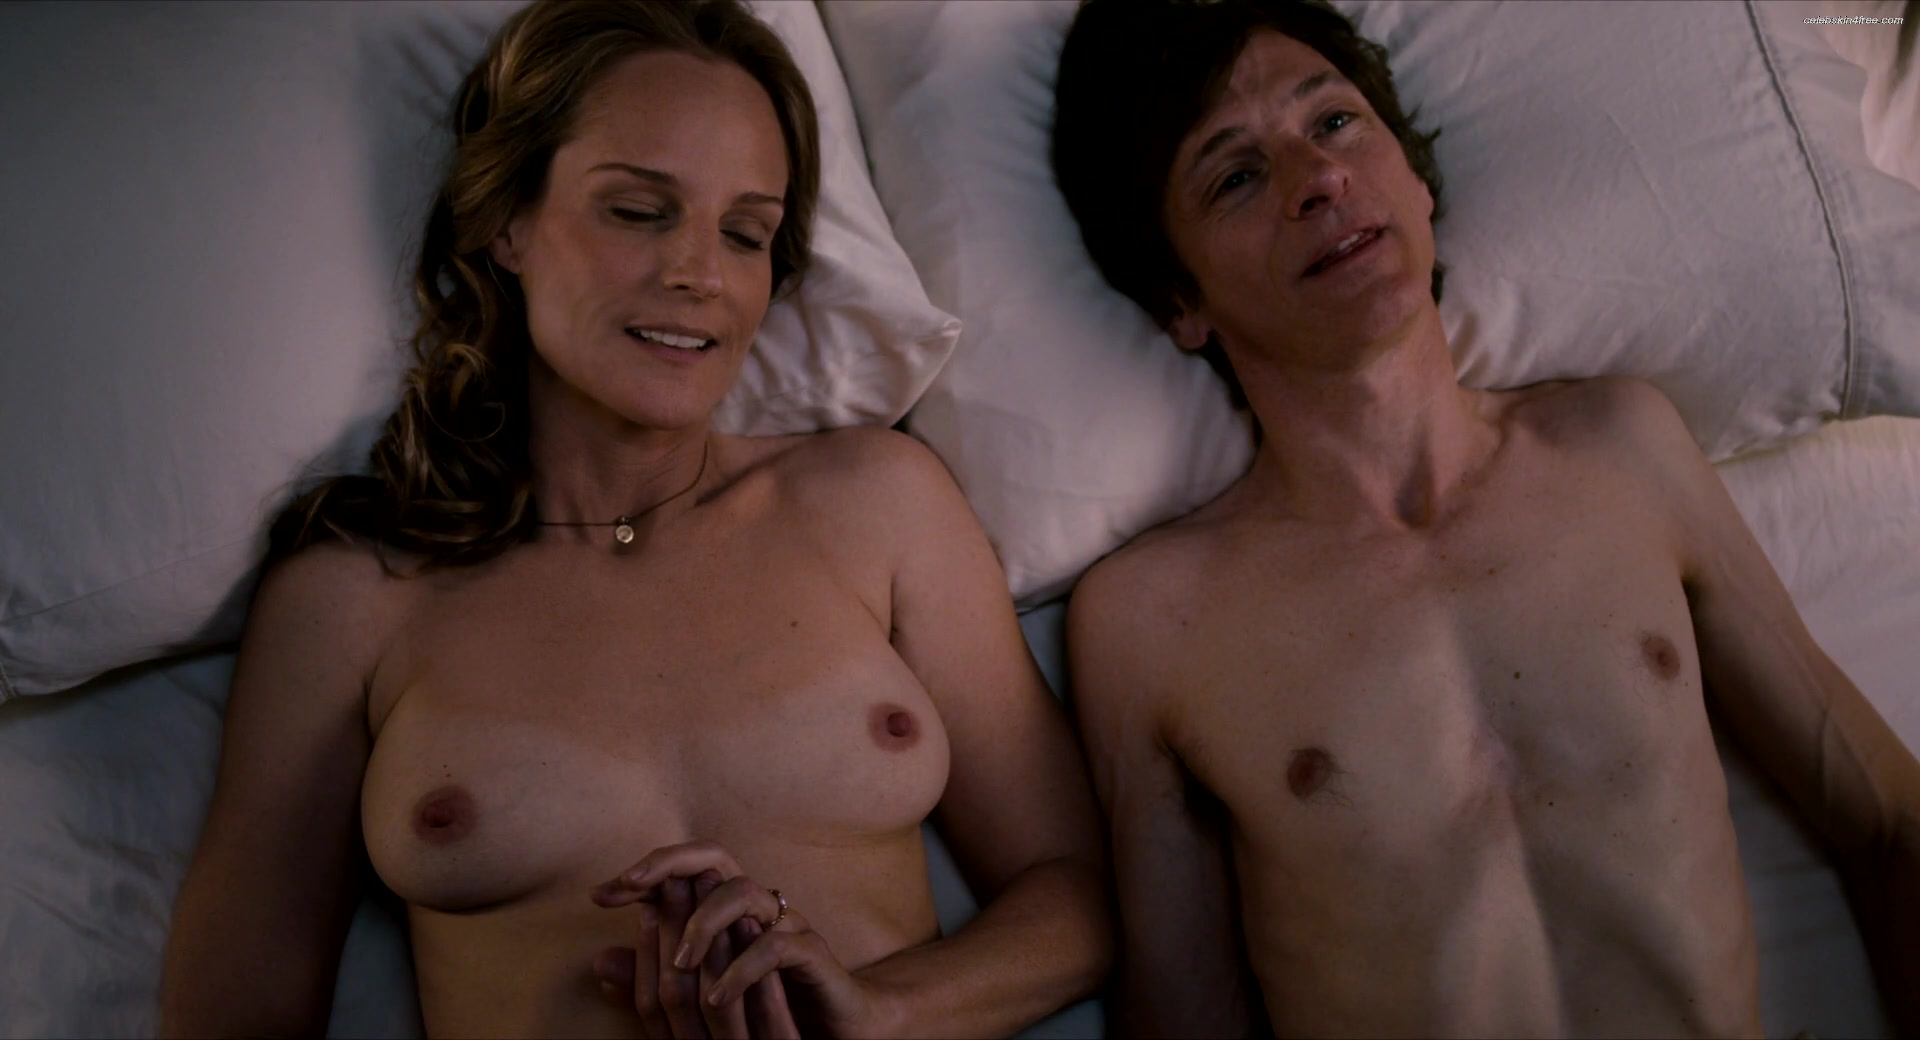 Helen hunt in the nude